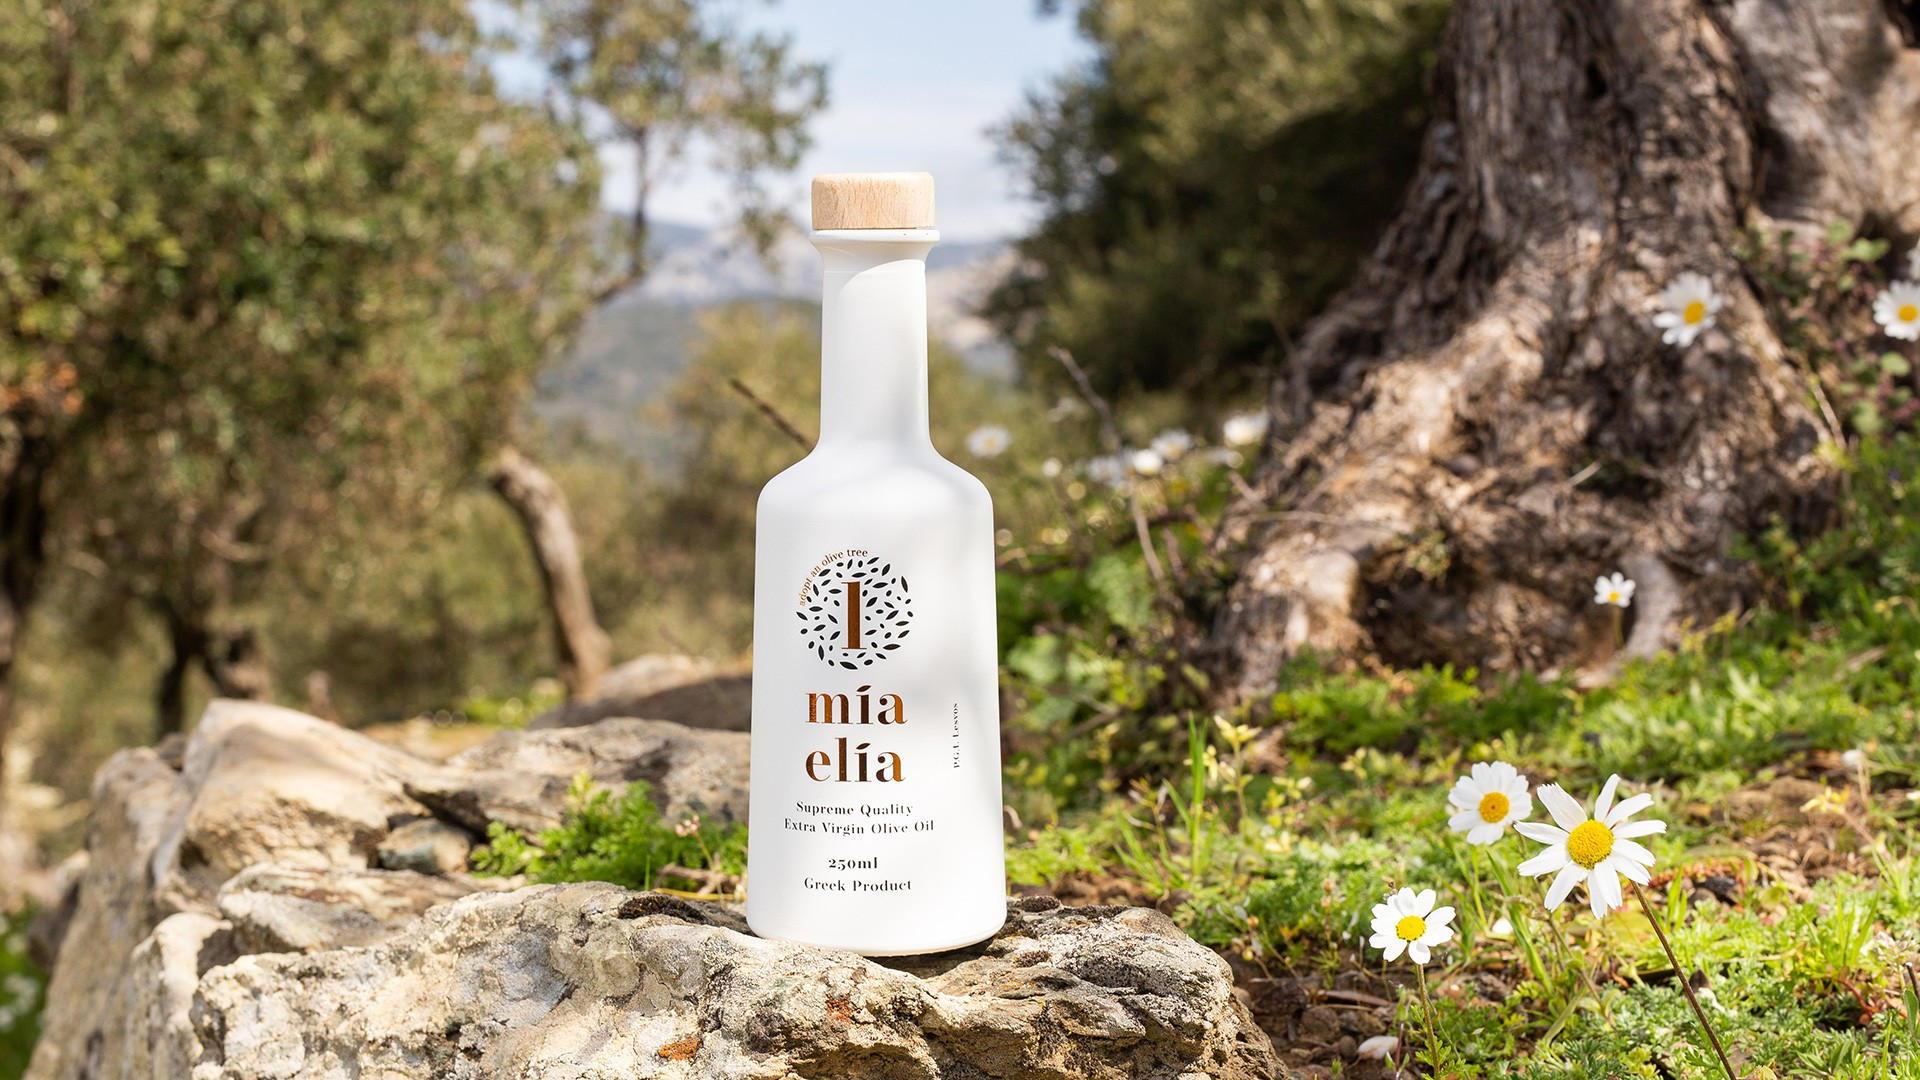 Mia Elia Olive Oil Bottle